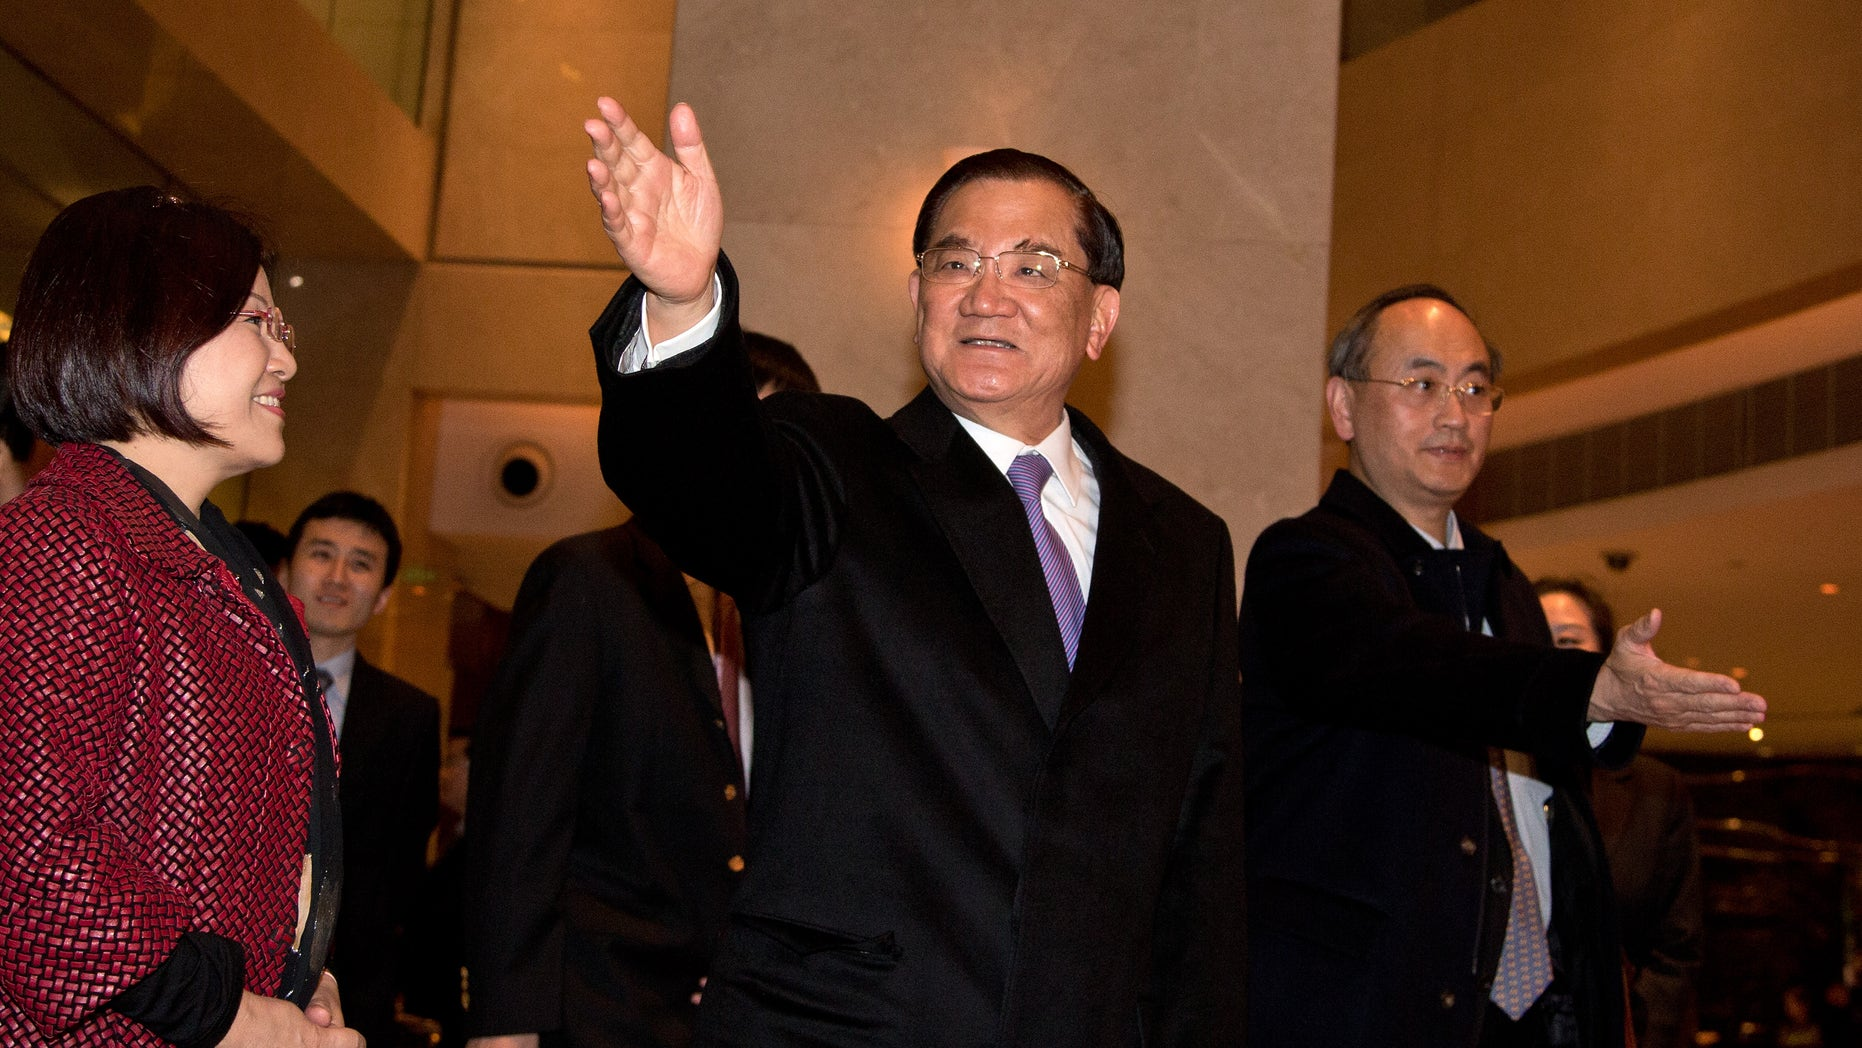 Taiwan's former vice president Lien Chan, center, waves to journalists upon arrival at a hotel in Beijing Sunday, Feb. 24, 2013. Lien Chan leads a business and politician delegation  to Beijing for a three day visit and will meet with Chinese President Hu Jintao and Communist Party Secretary General and the country's new leader Xi Jinping. (AP Photo/Andy Wong)